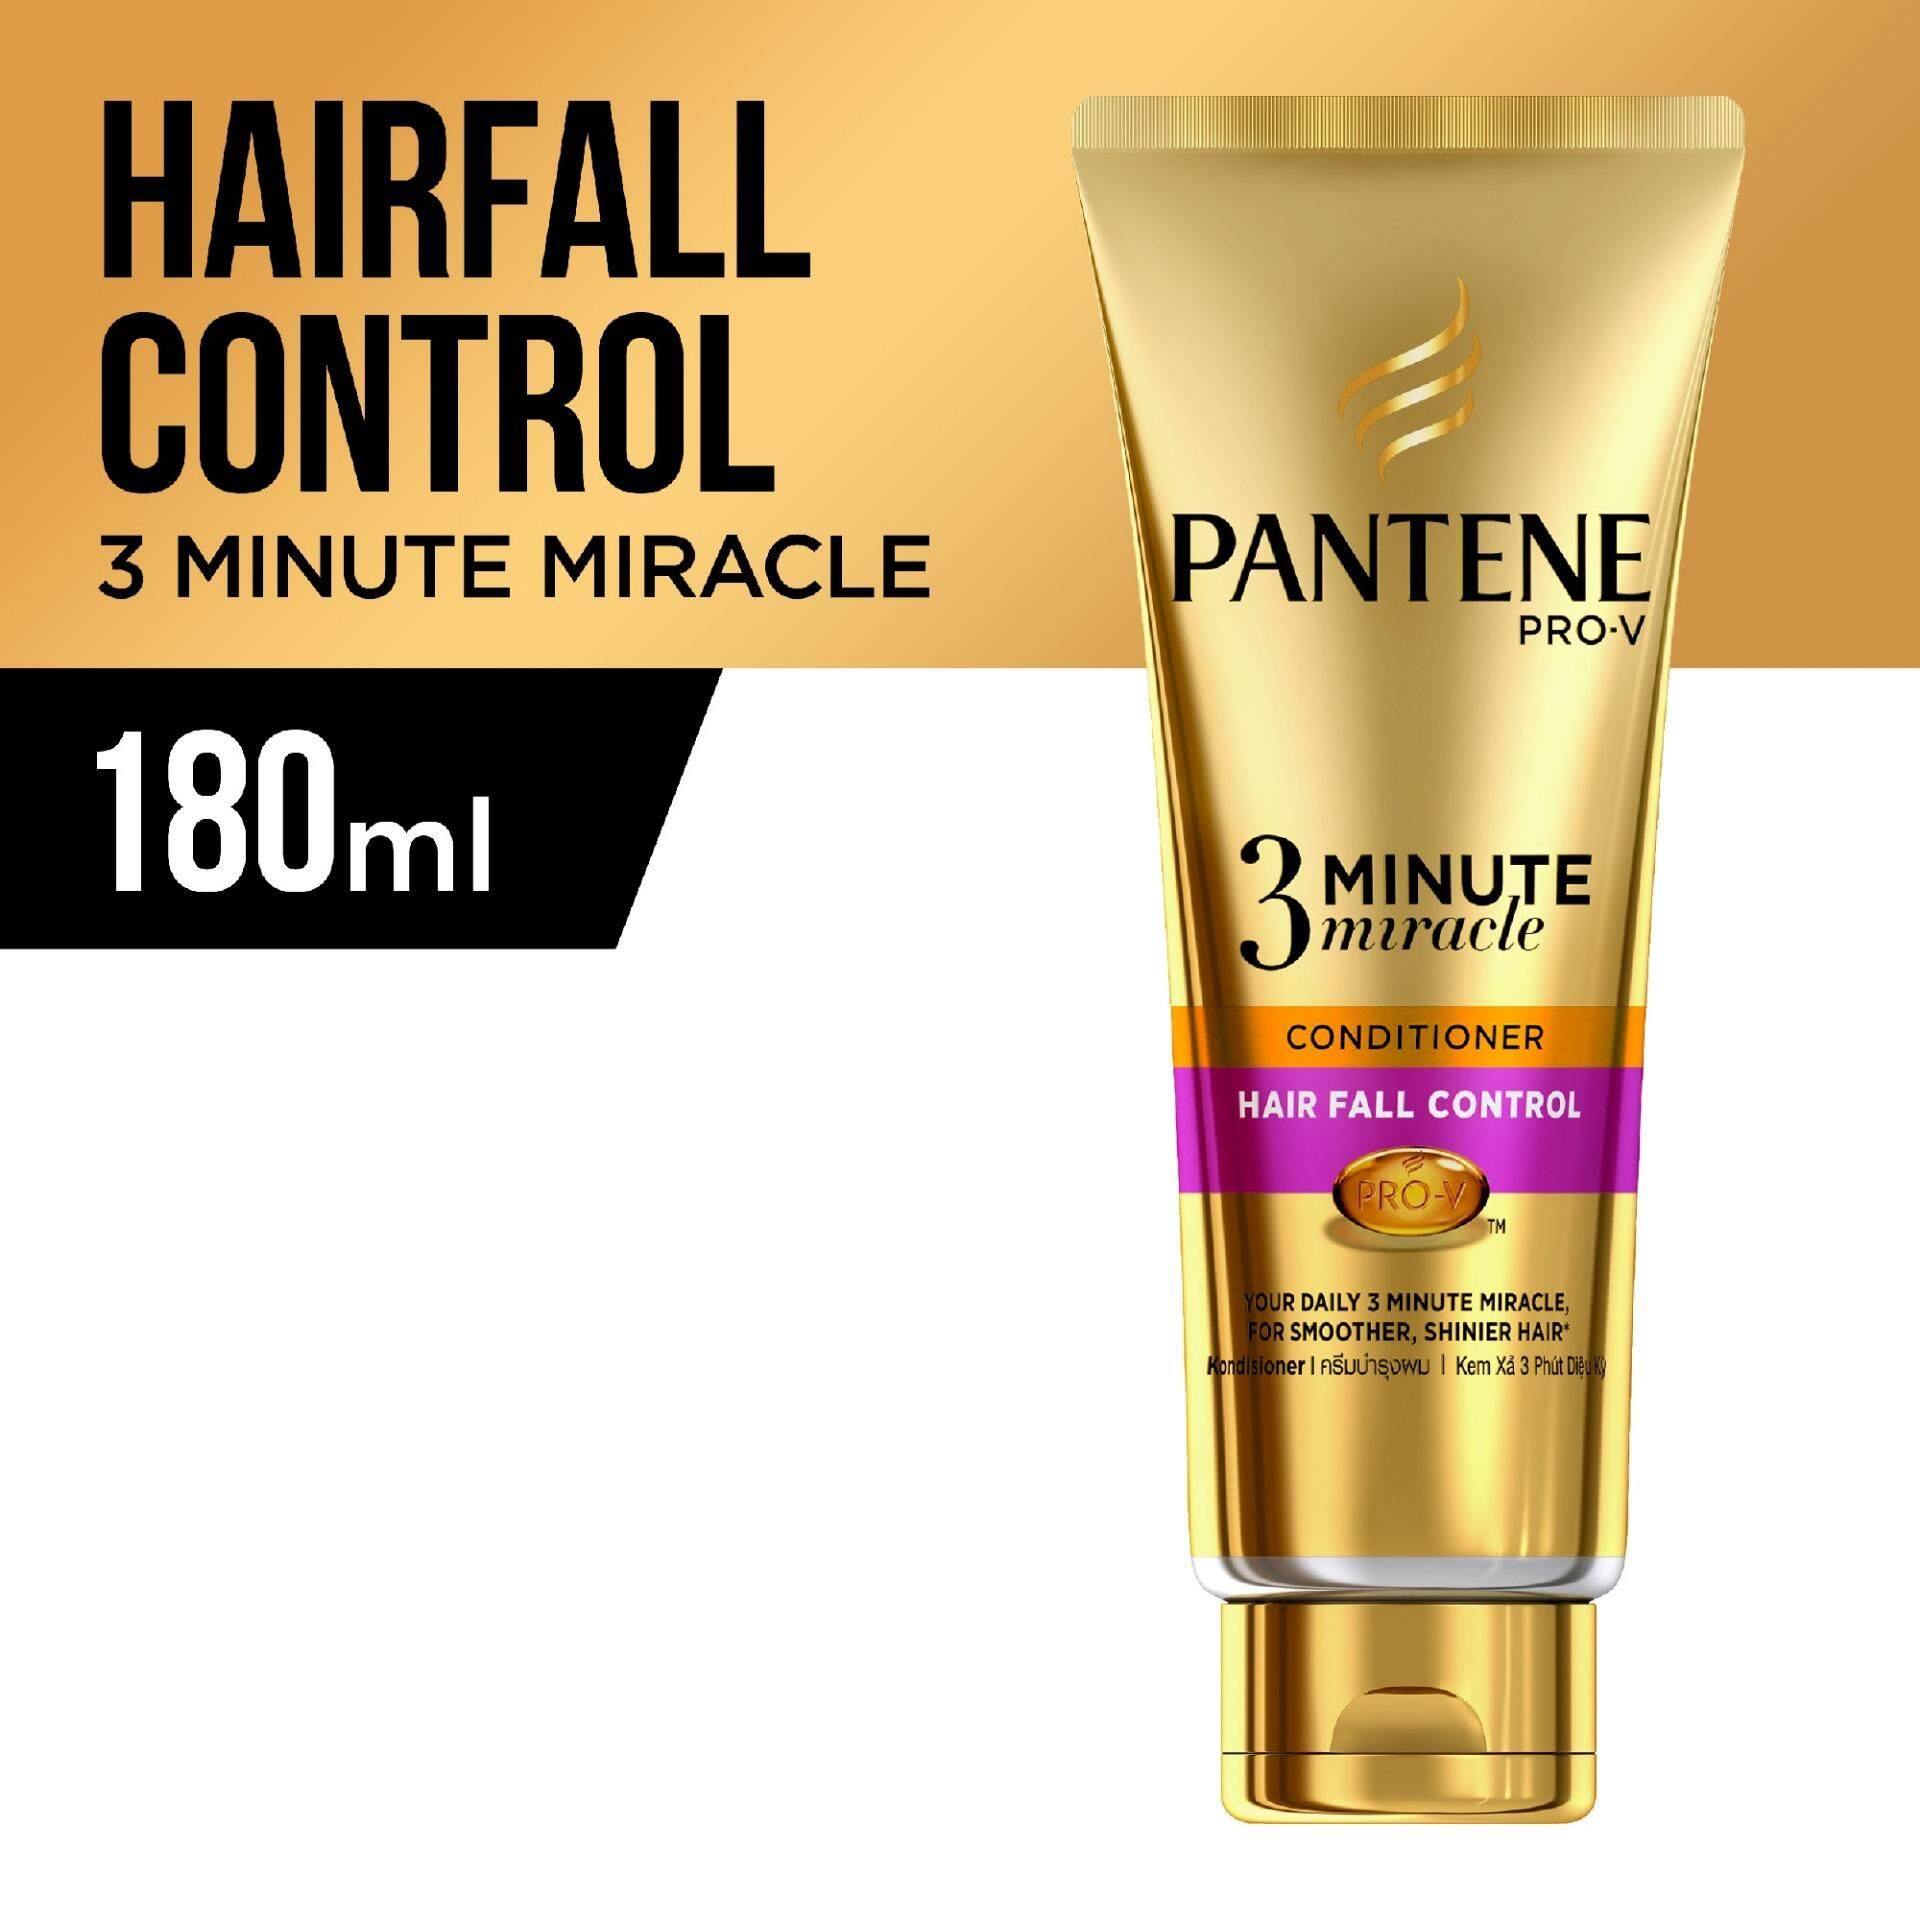 Pantene Pro-V 3 Minute Miracle Conditioner Hair Fall Control 180ml